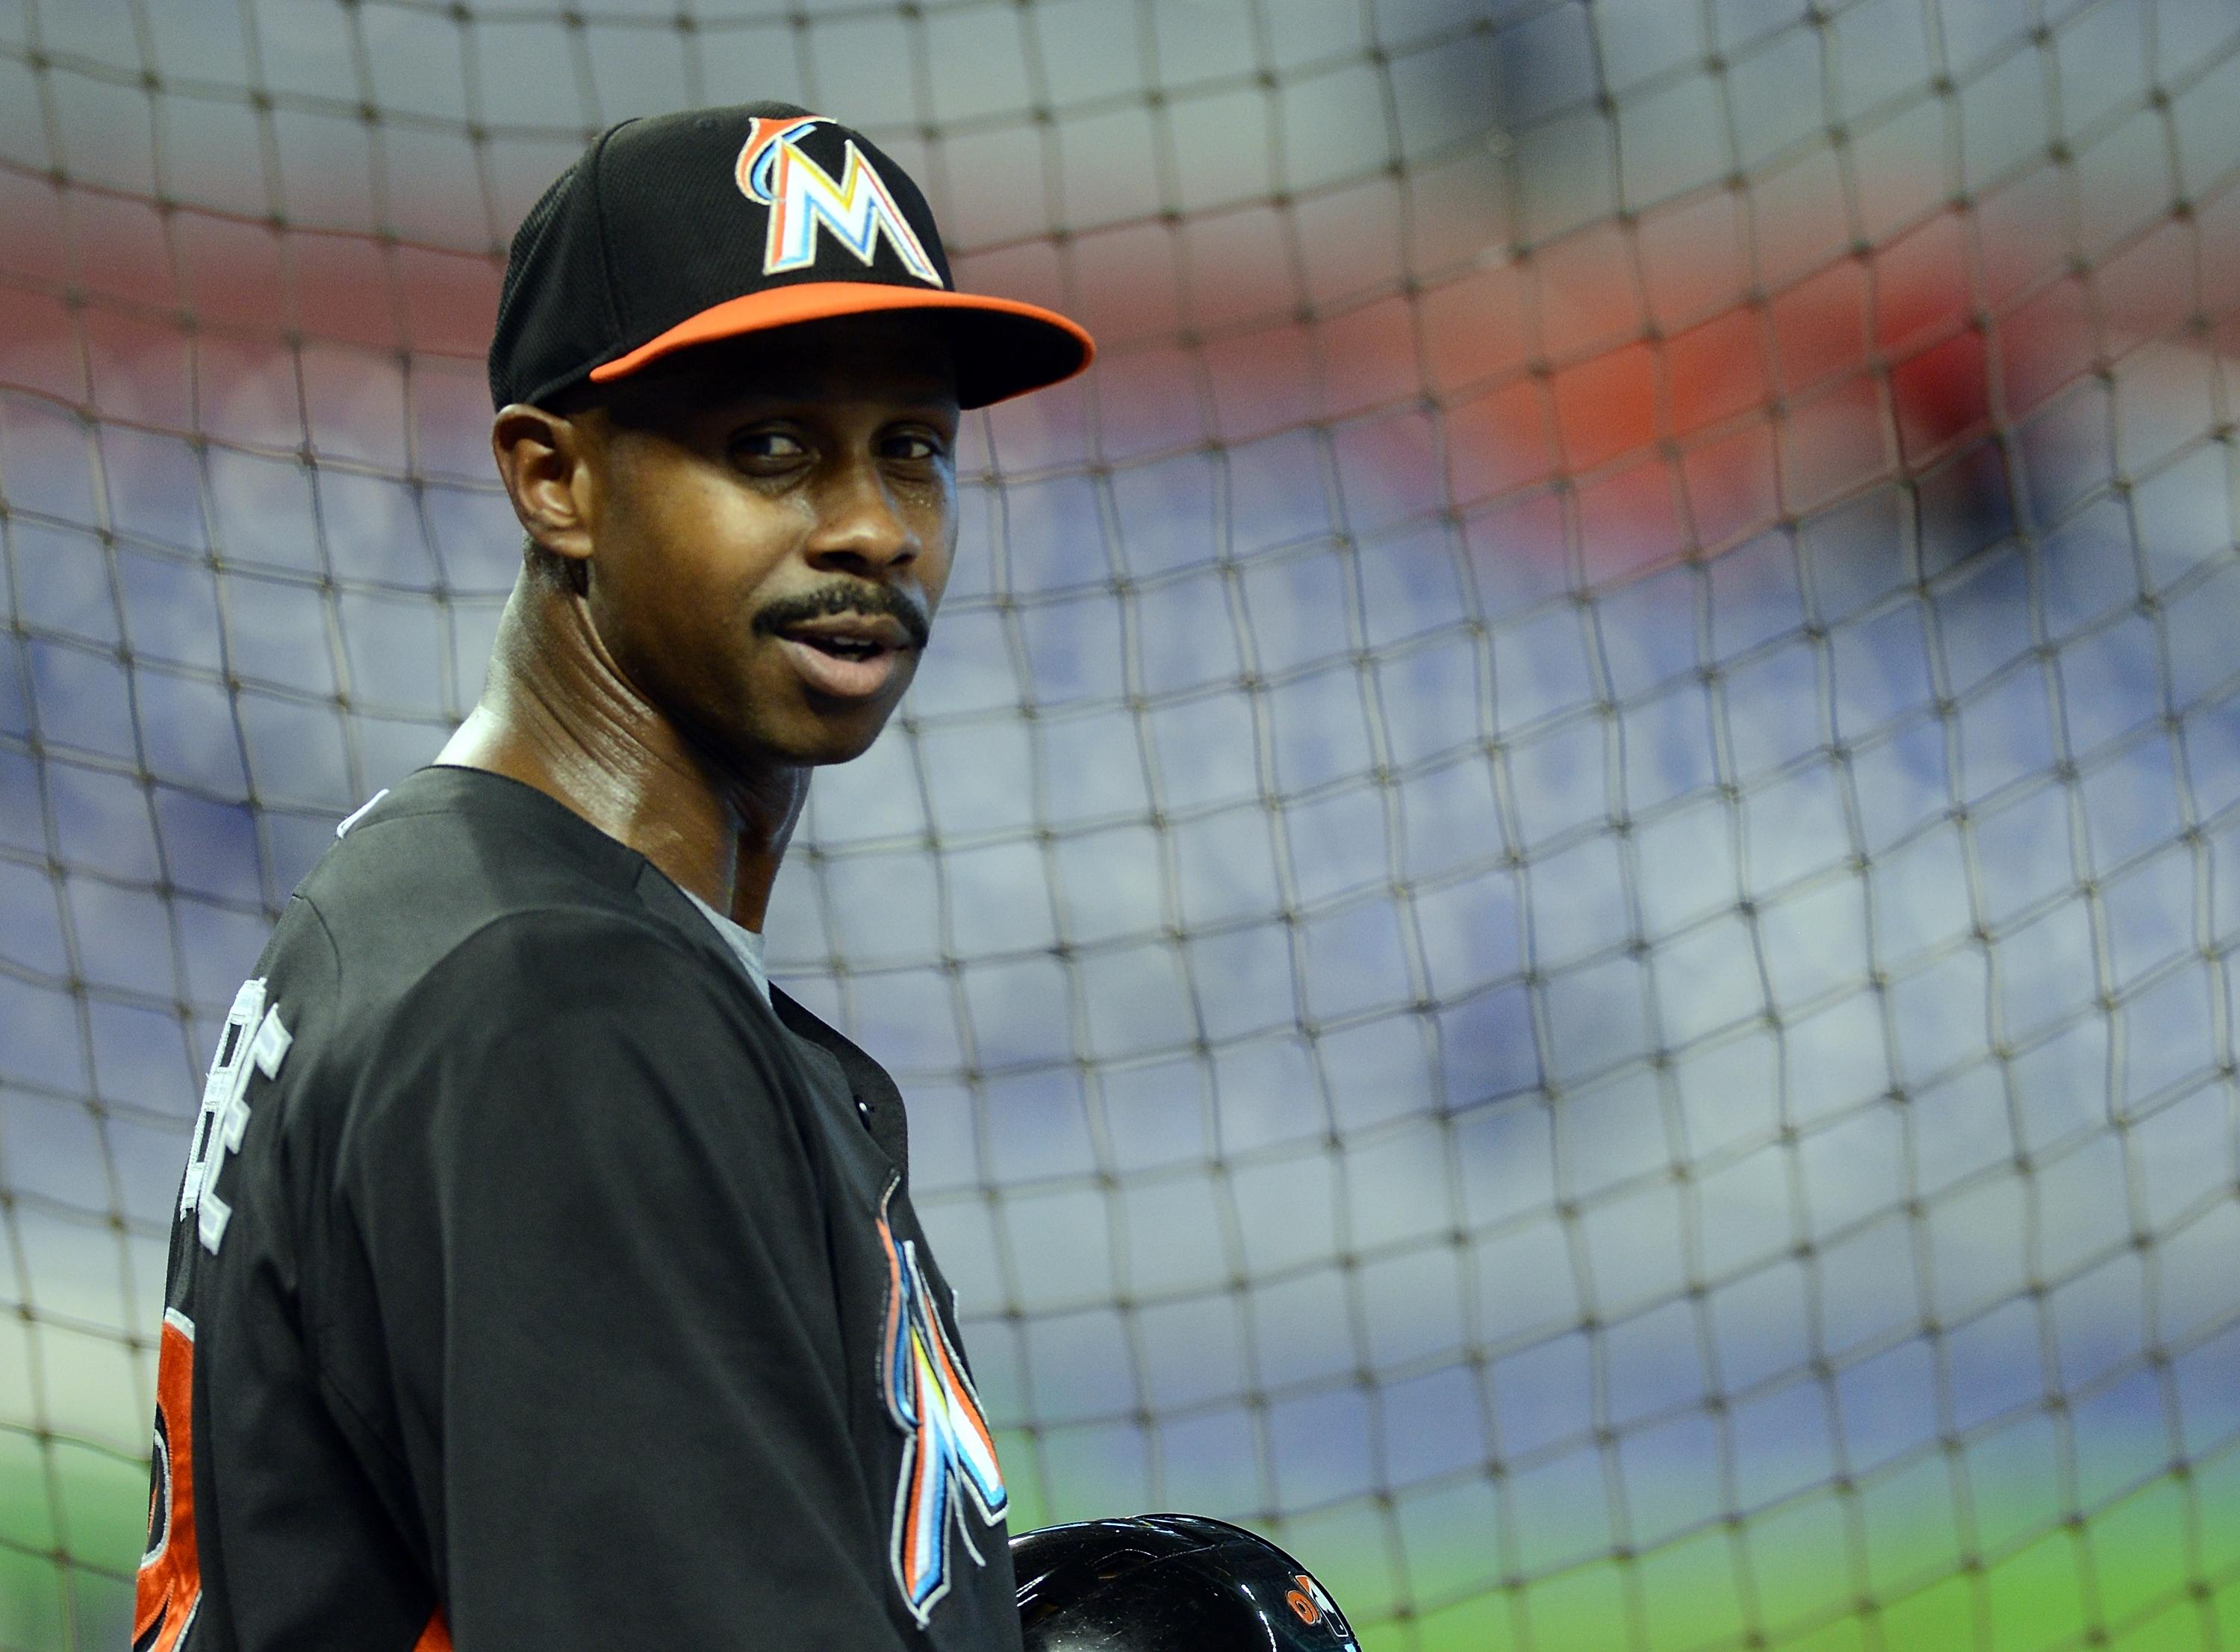 Juan Pierre officially retires after 14 MLB seasons